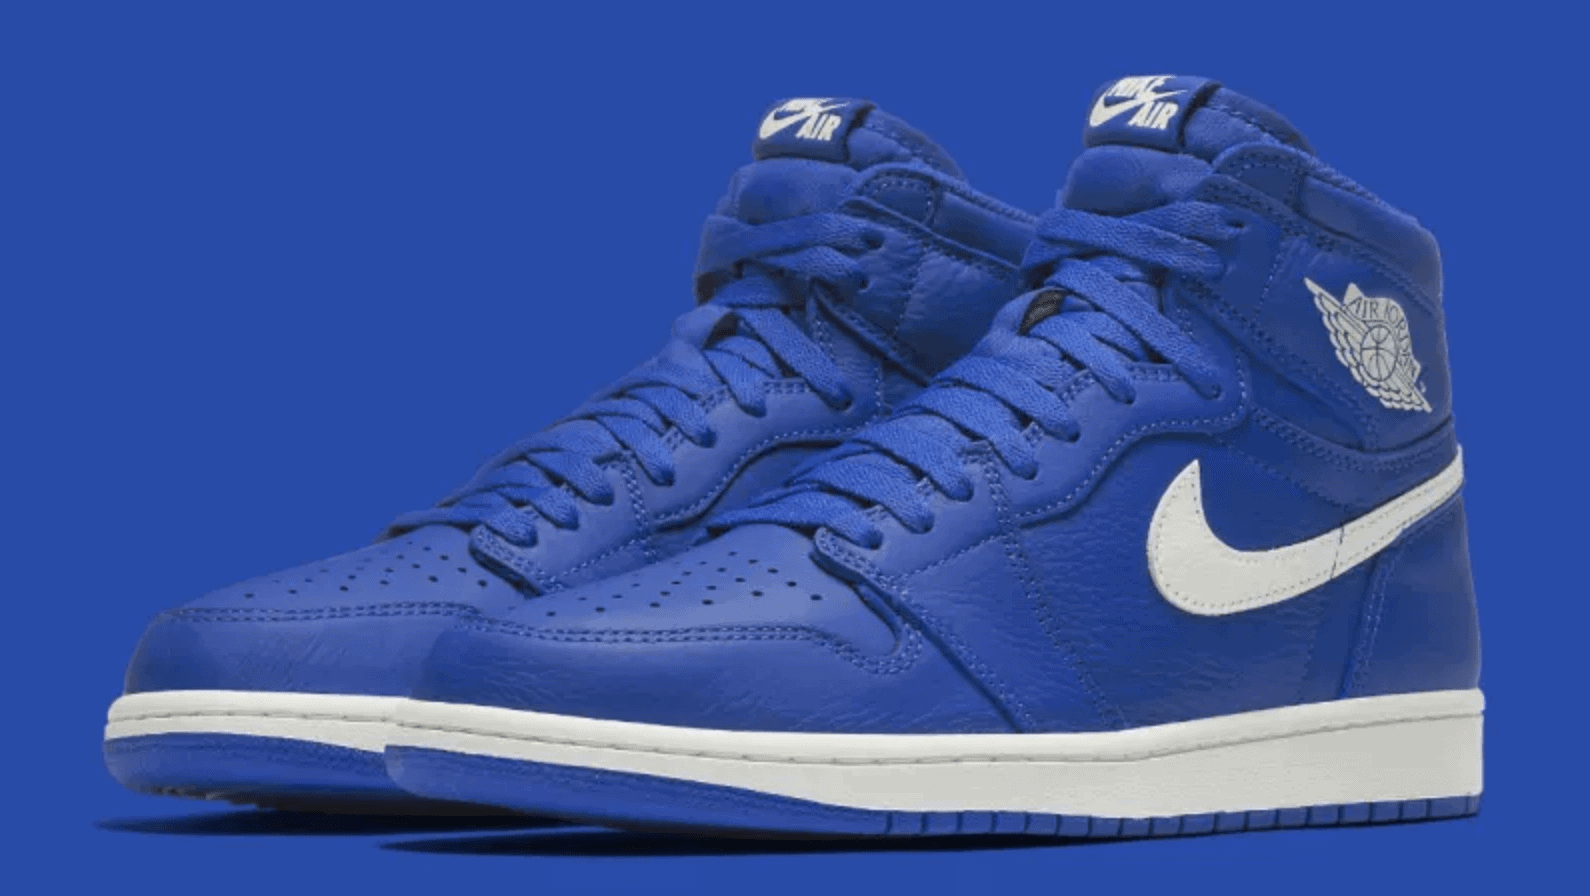 sale retailer b49b5 ad933 ... inexpensive air jordan 1 hyper royal release date july 1 2018. color royal  sail price